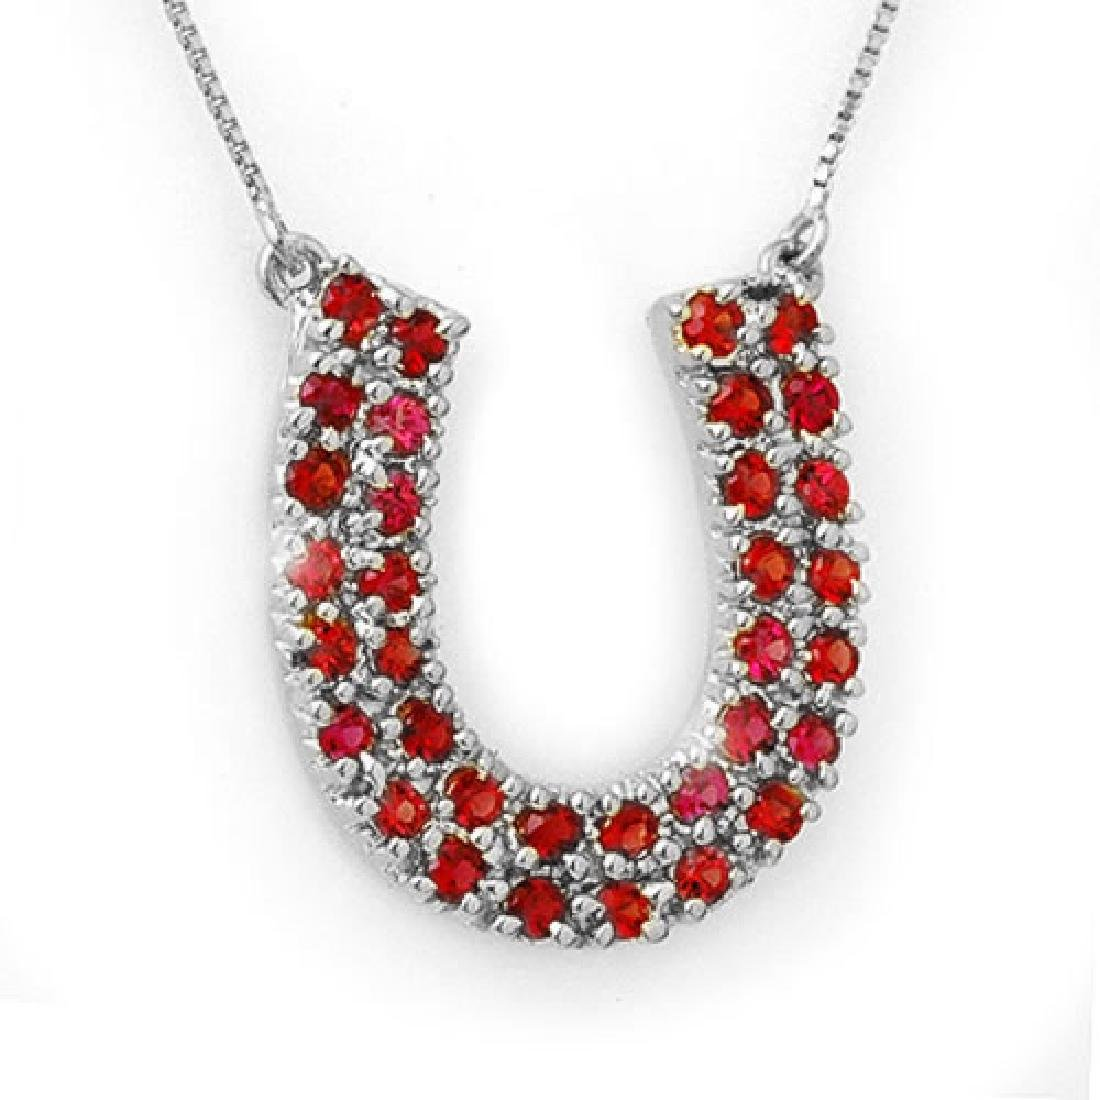 2.0 CTW Red Sapphire Necklace 14K White Gold